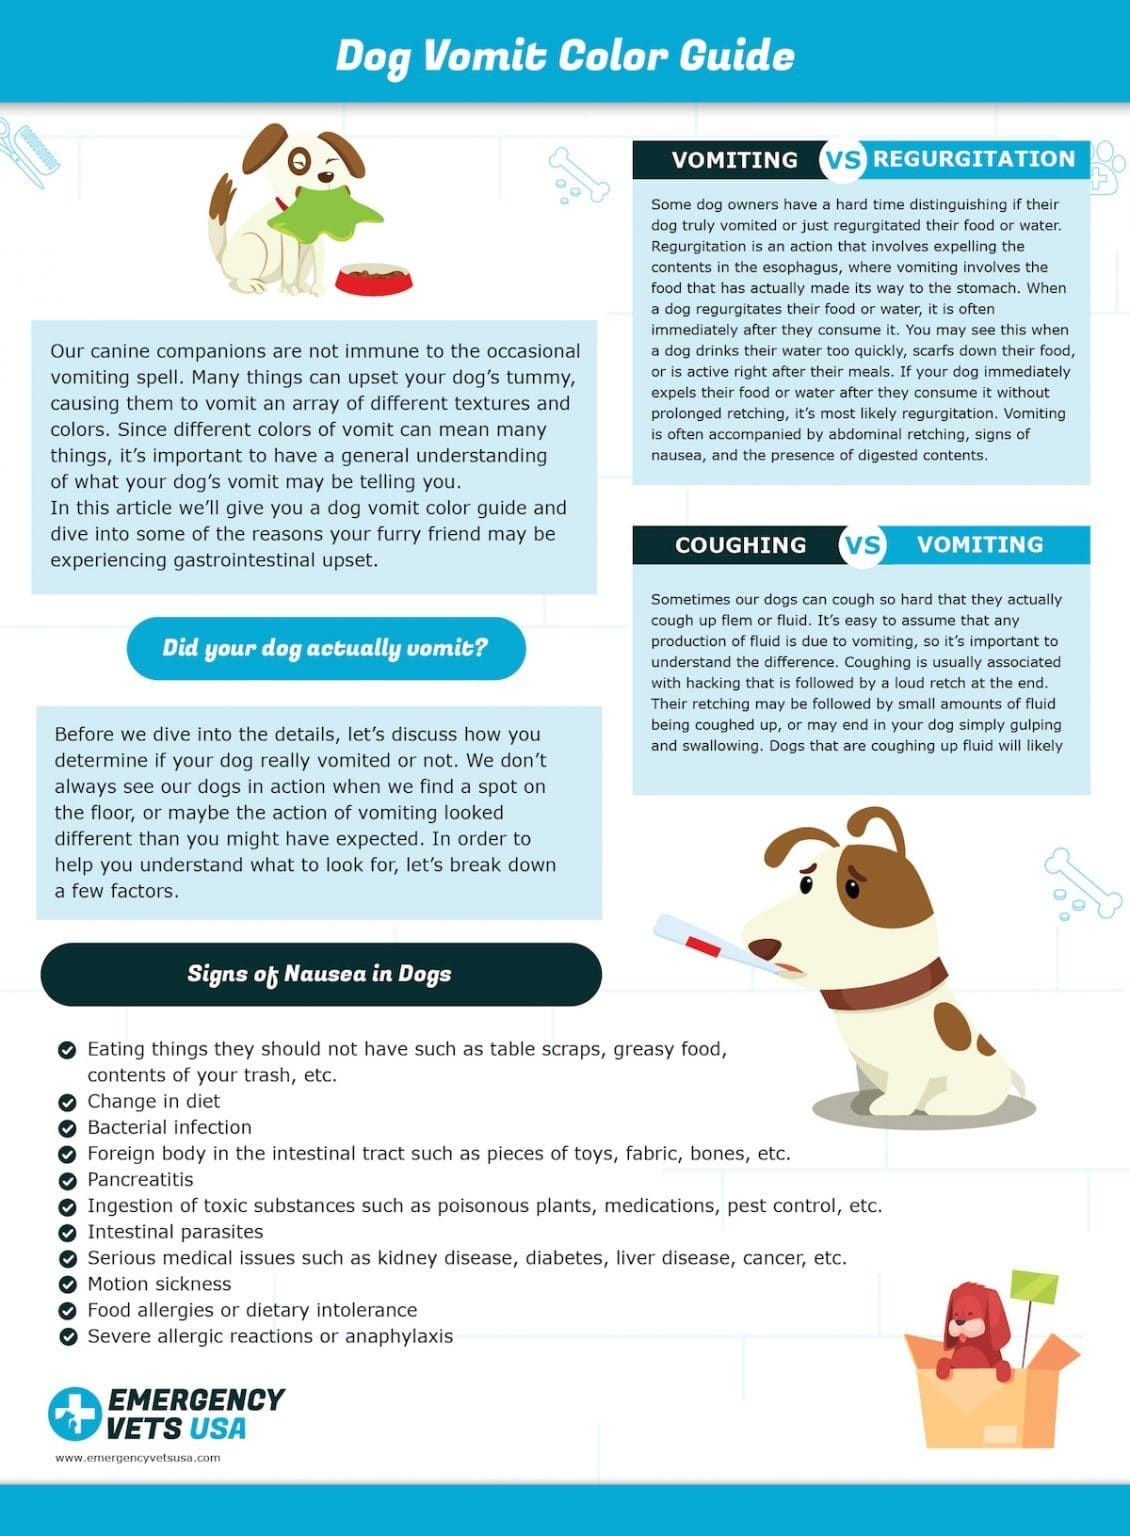 Dog Vomit Color Guide What Do The Different Colors Mean Dog Throwing Up Canine Companions Dogs